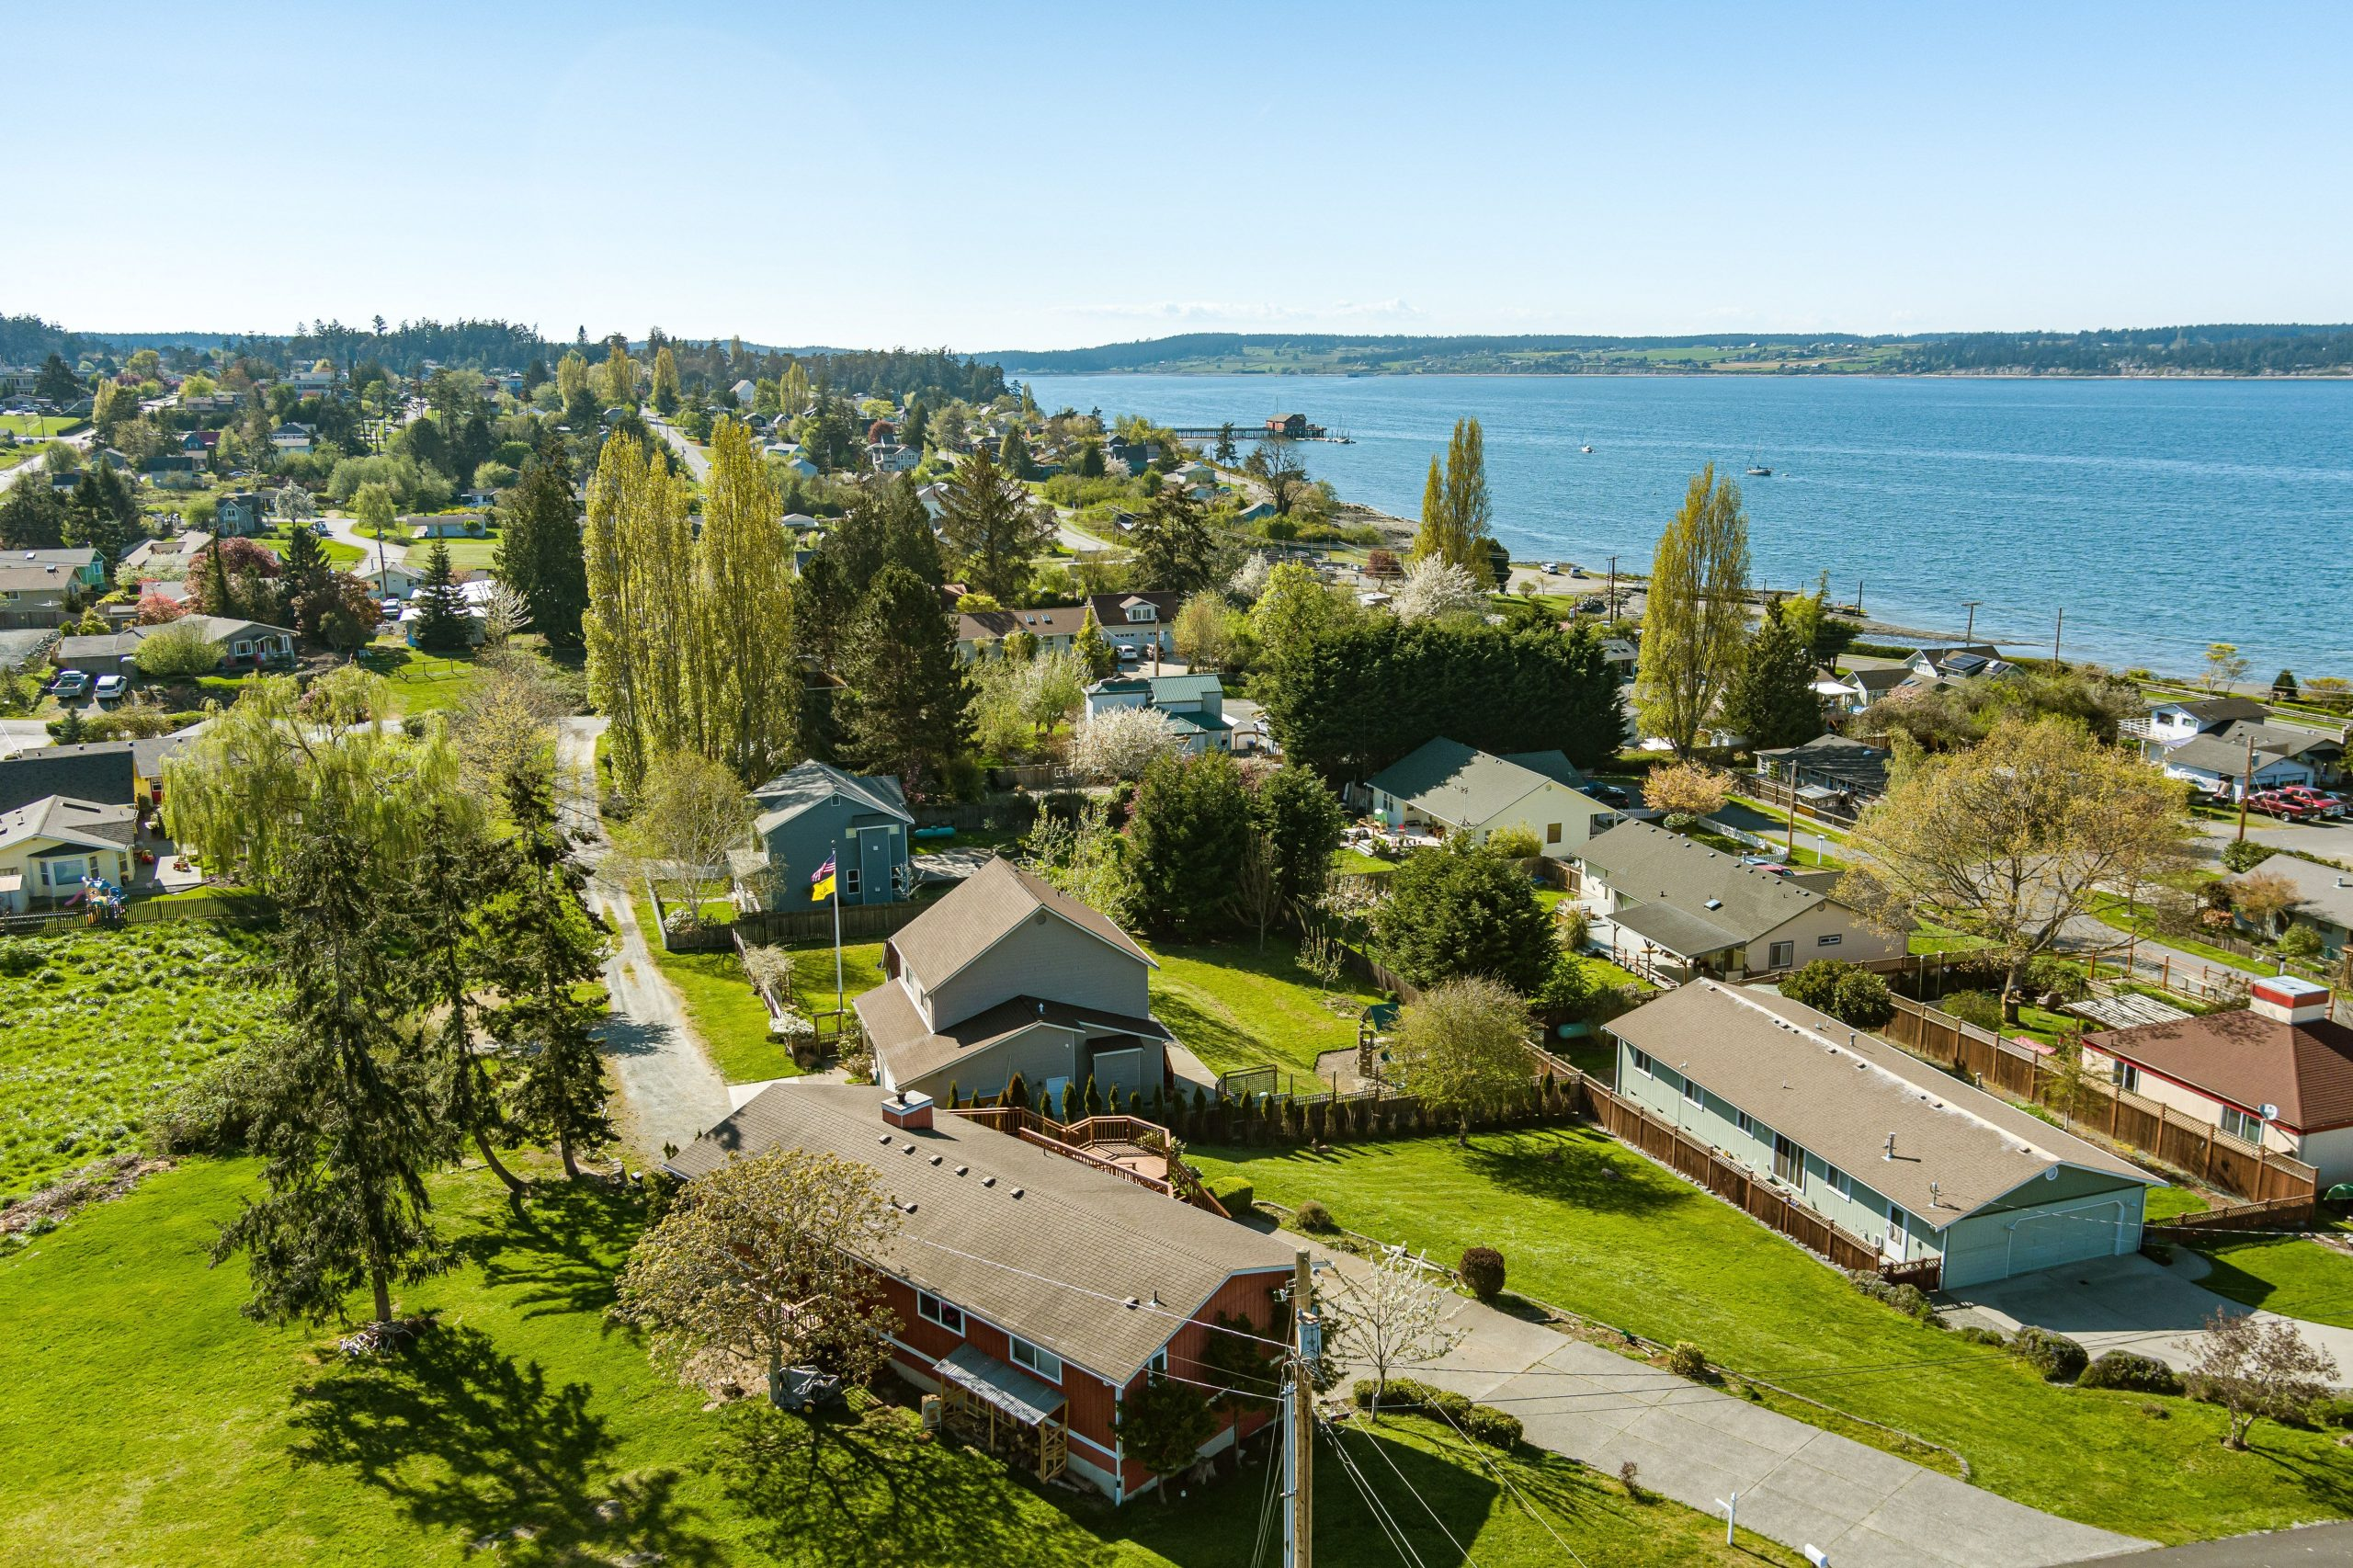 Town of Coupeville